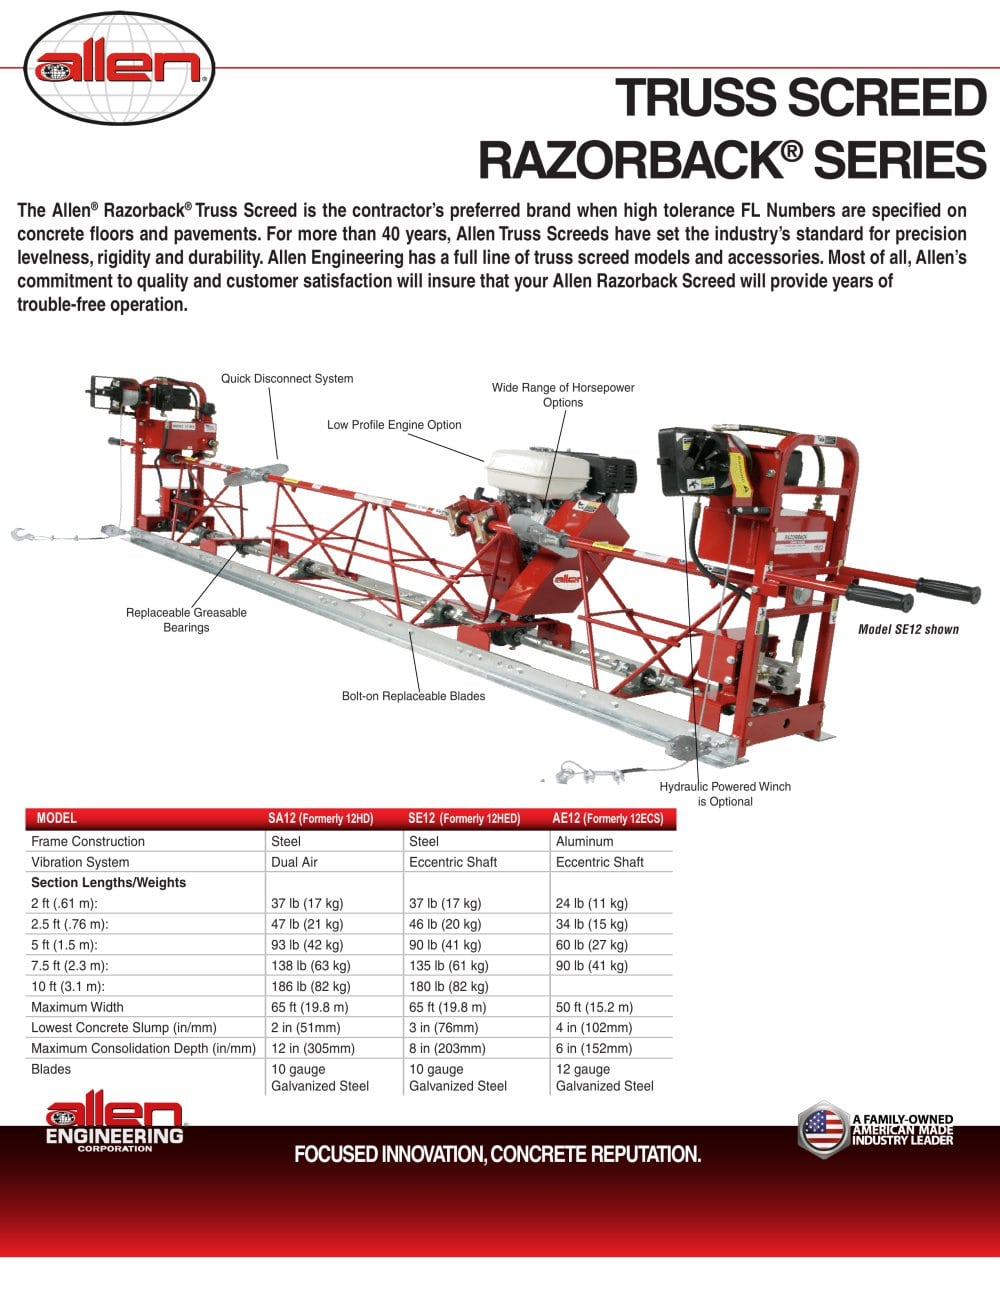 TRUSS SCREED RAZORBACK ® SERIES - Allen Engineering Corporation ...